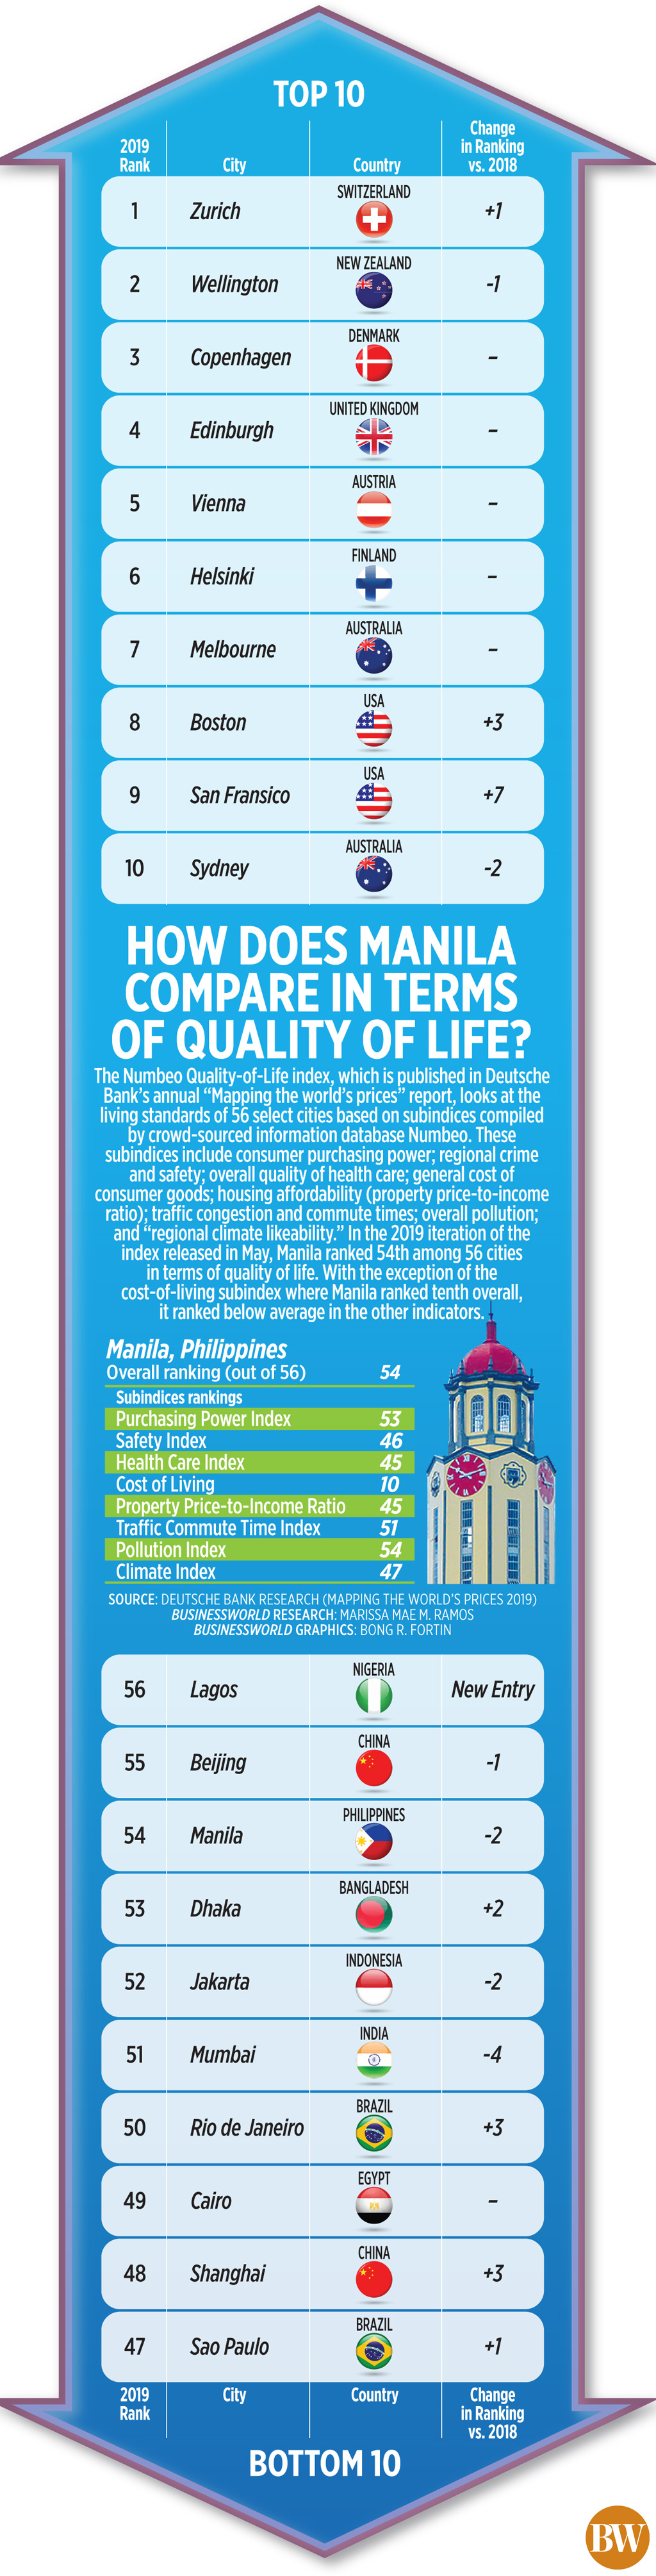 How does Manila compare in terms of quality of life?